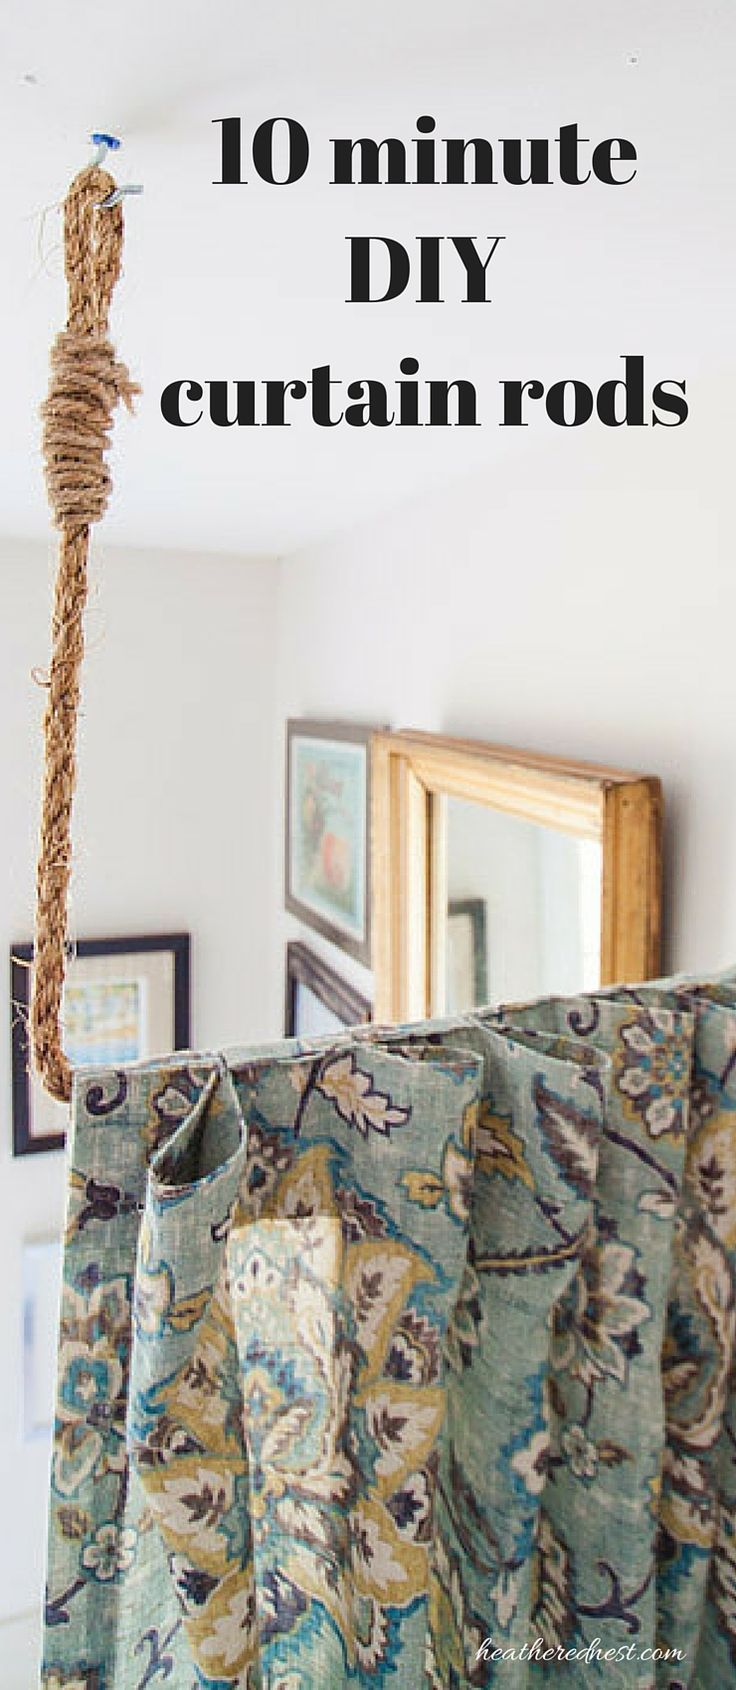 Pipe Dreams Aka Build A Diy Curtain Rod In 10 Minutes